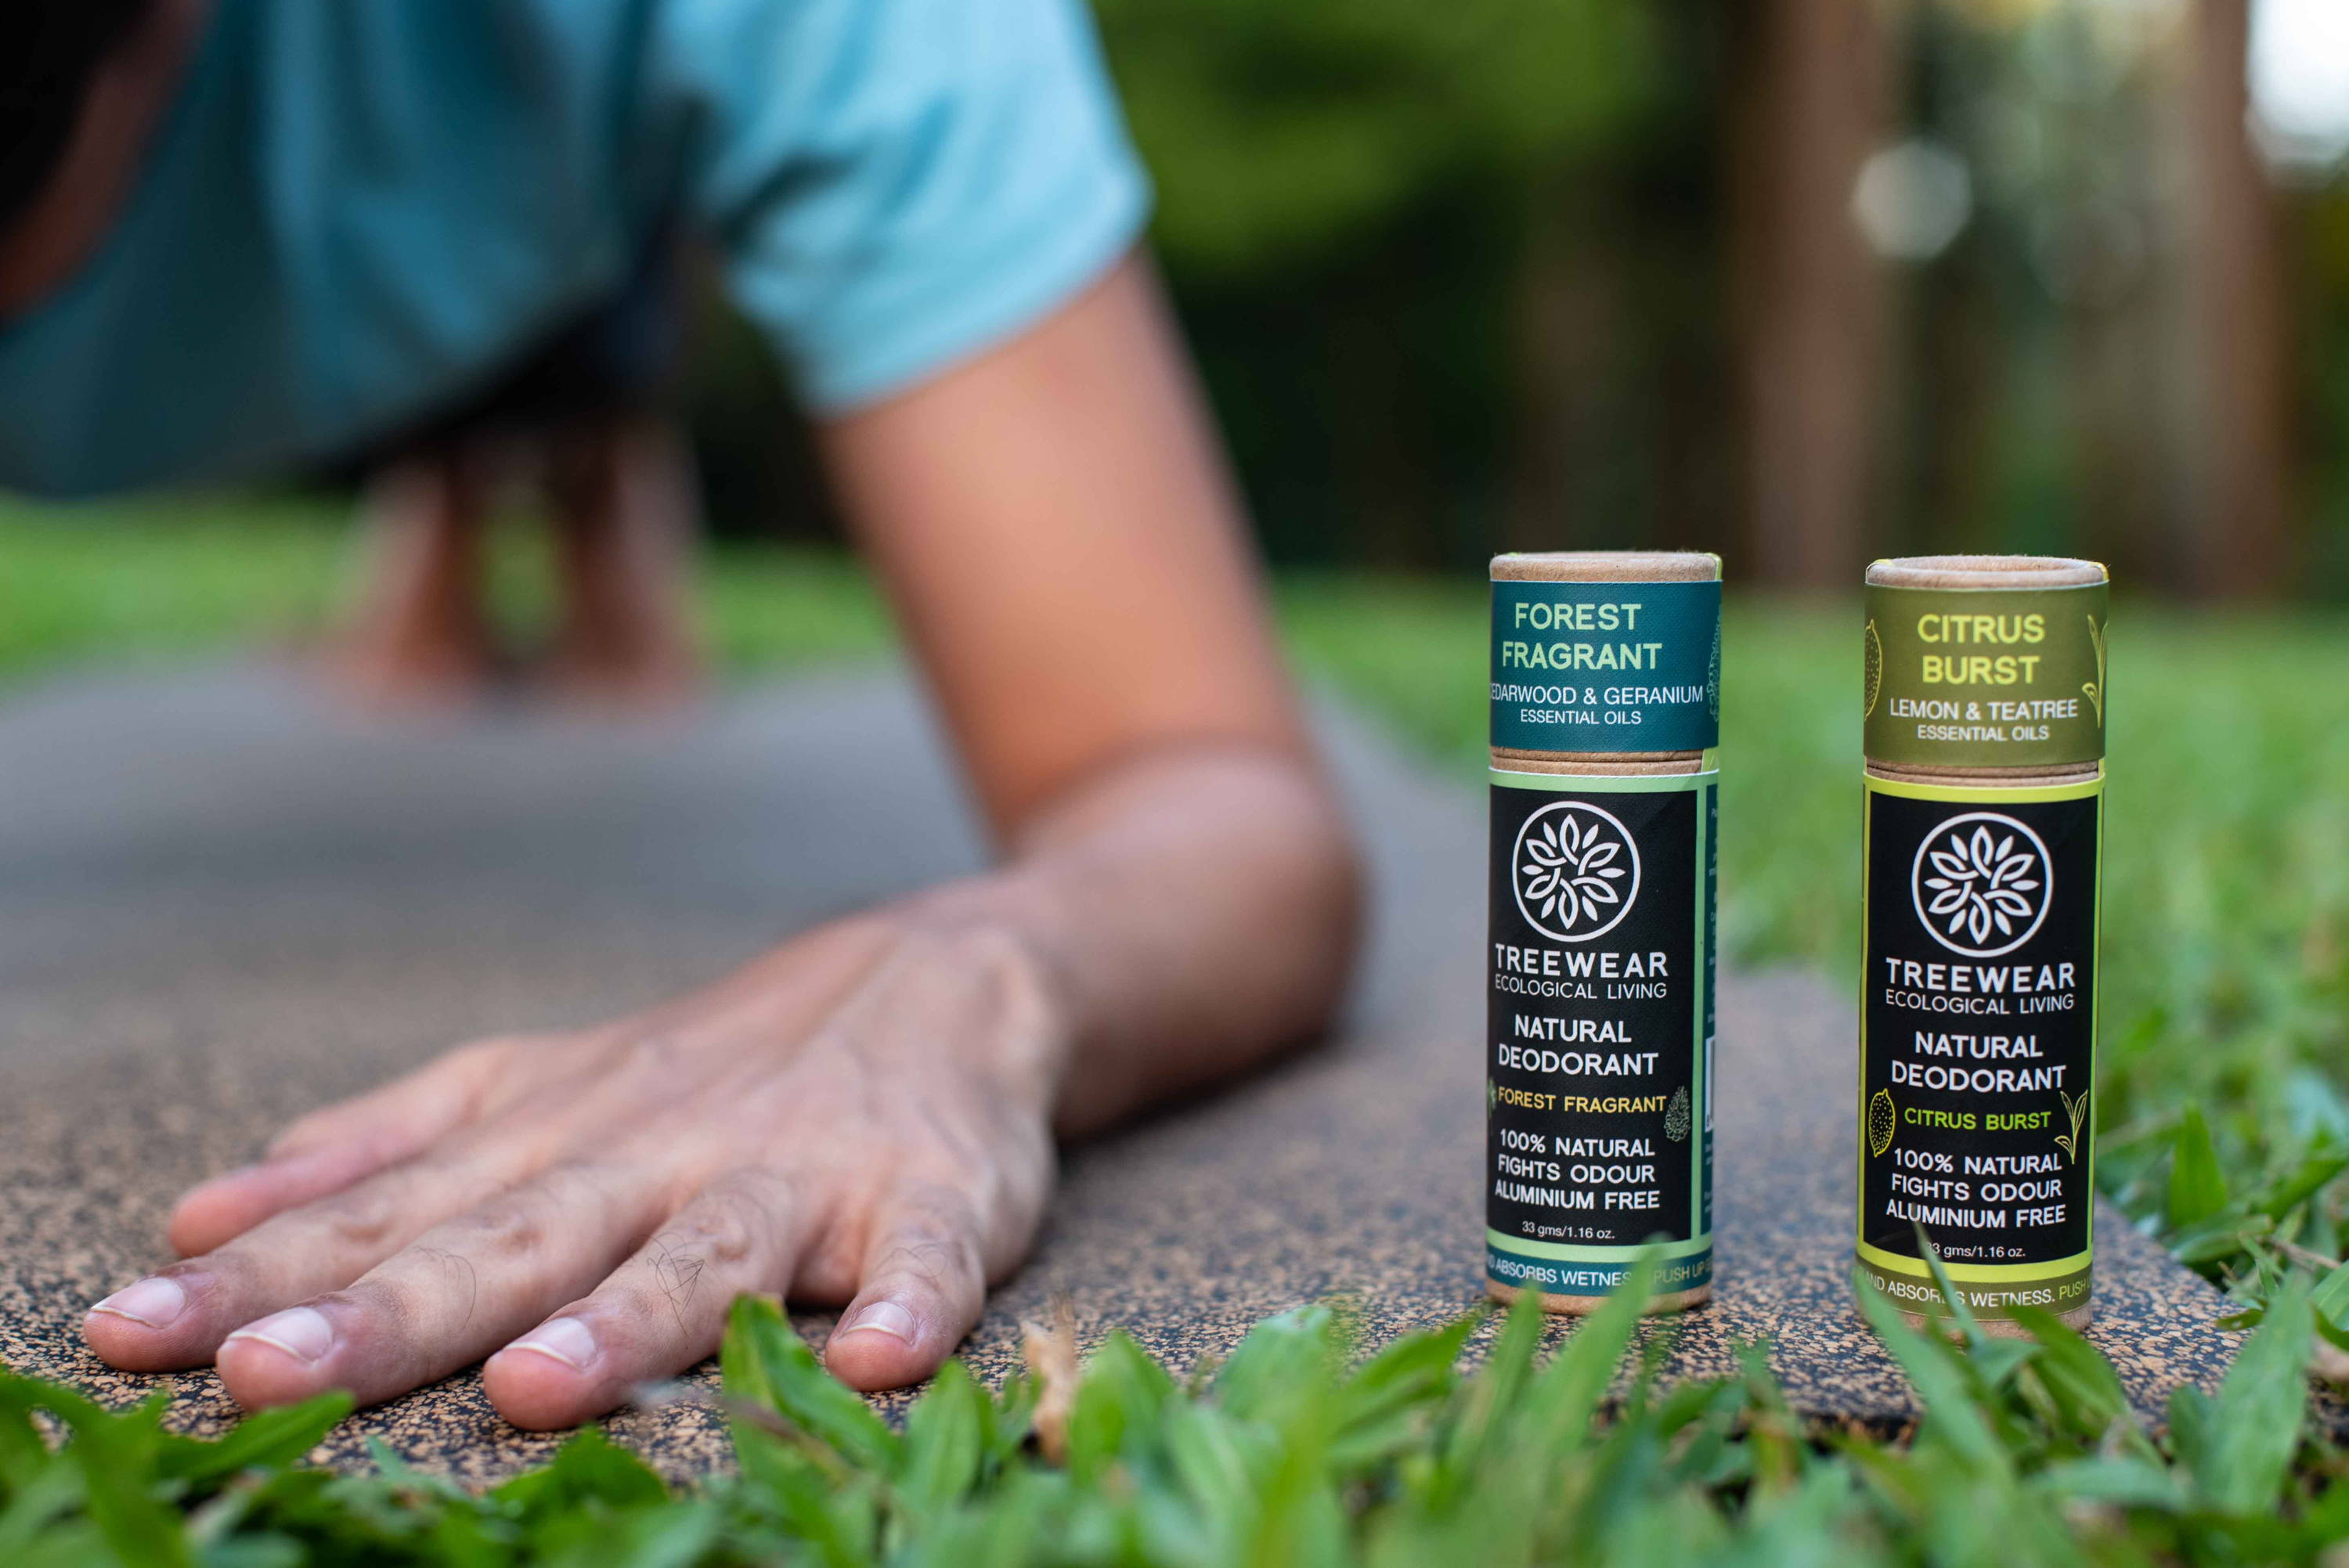 Natural Deodorant Stick - set of 2 planking